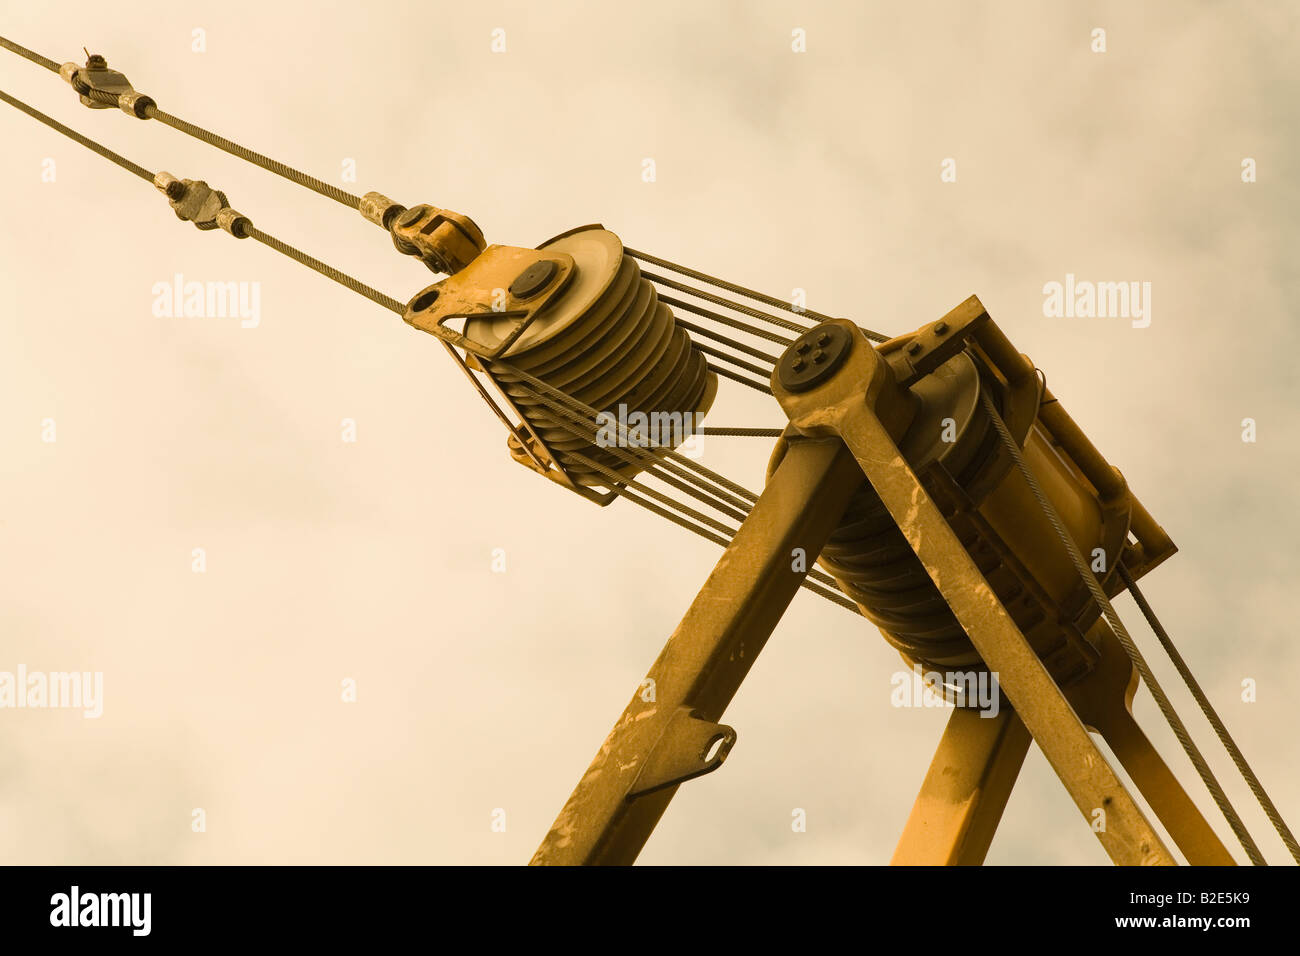 Pulleys In Cranes : Pulley system on crane stock photo royalty free image